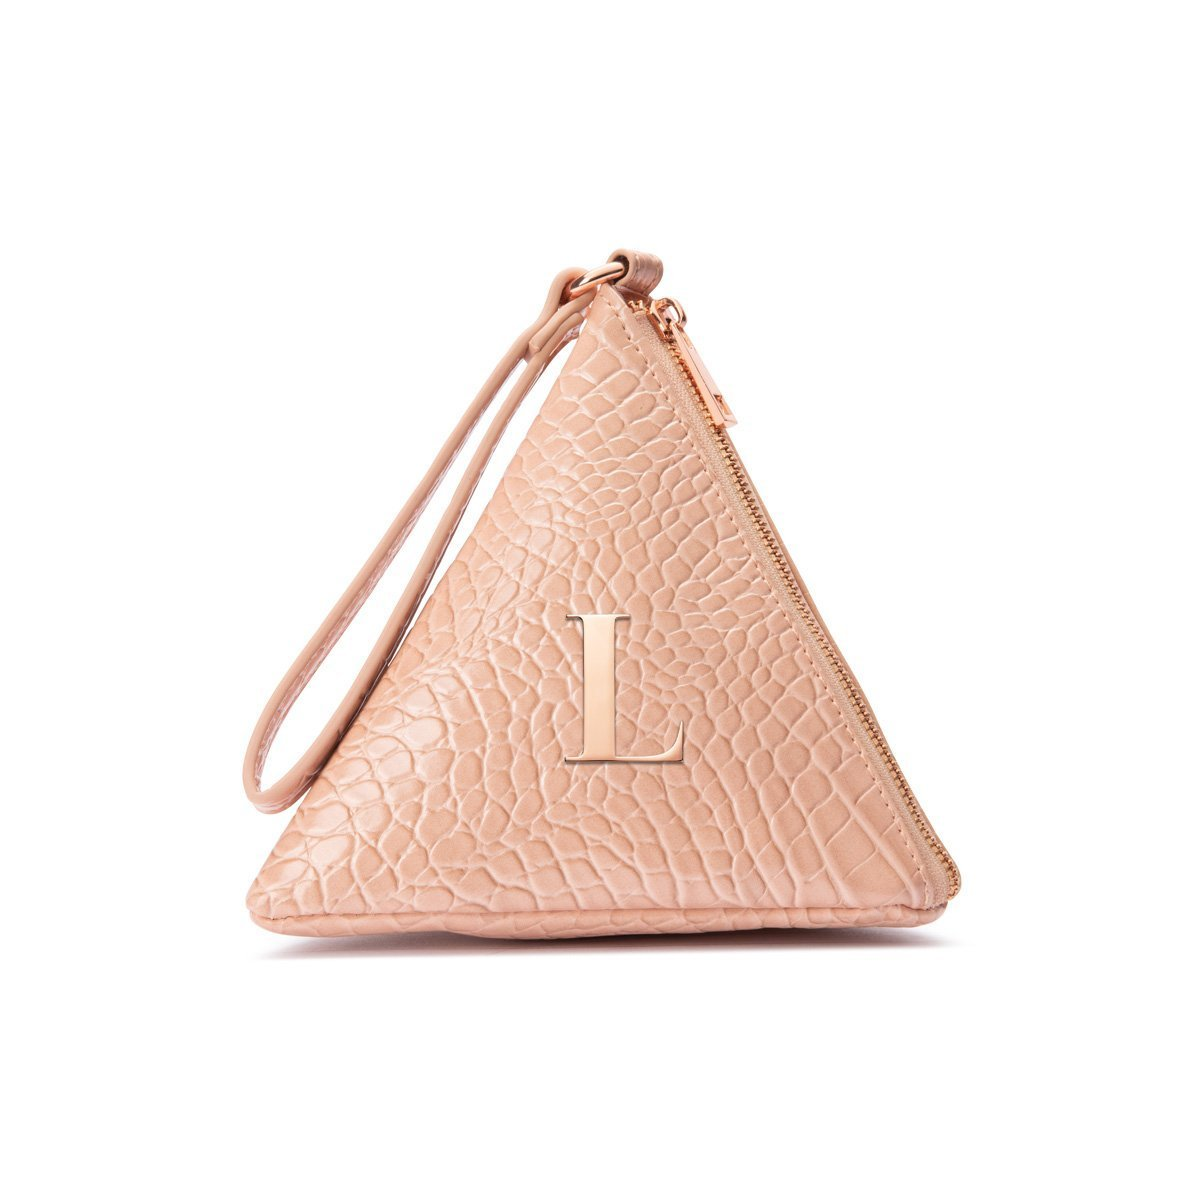 Lilly Pyramid Clutch Bag (Nude Peach/Rose Gold)